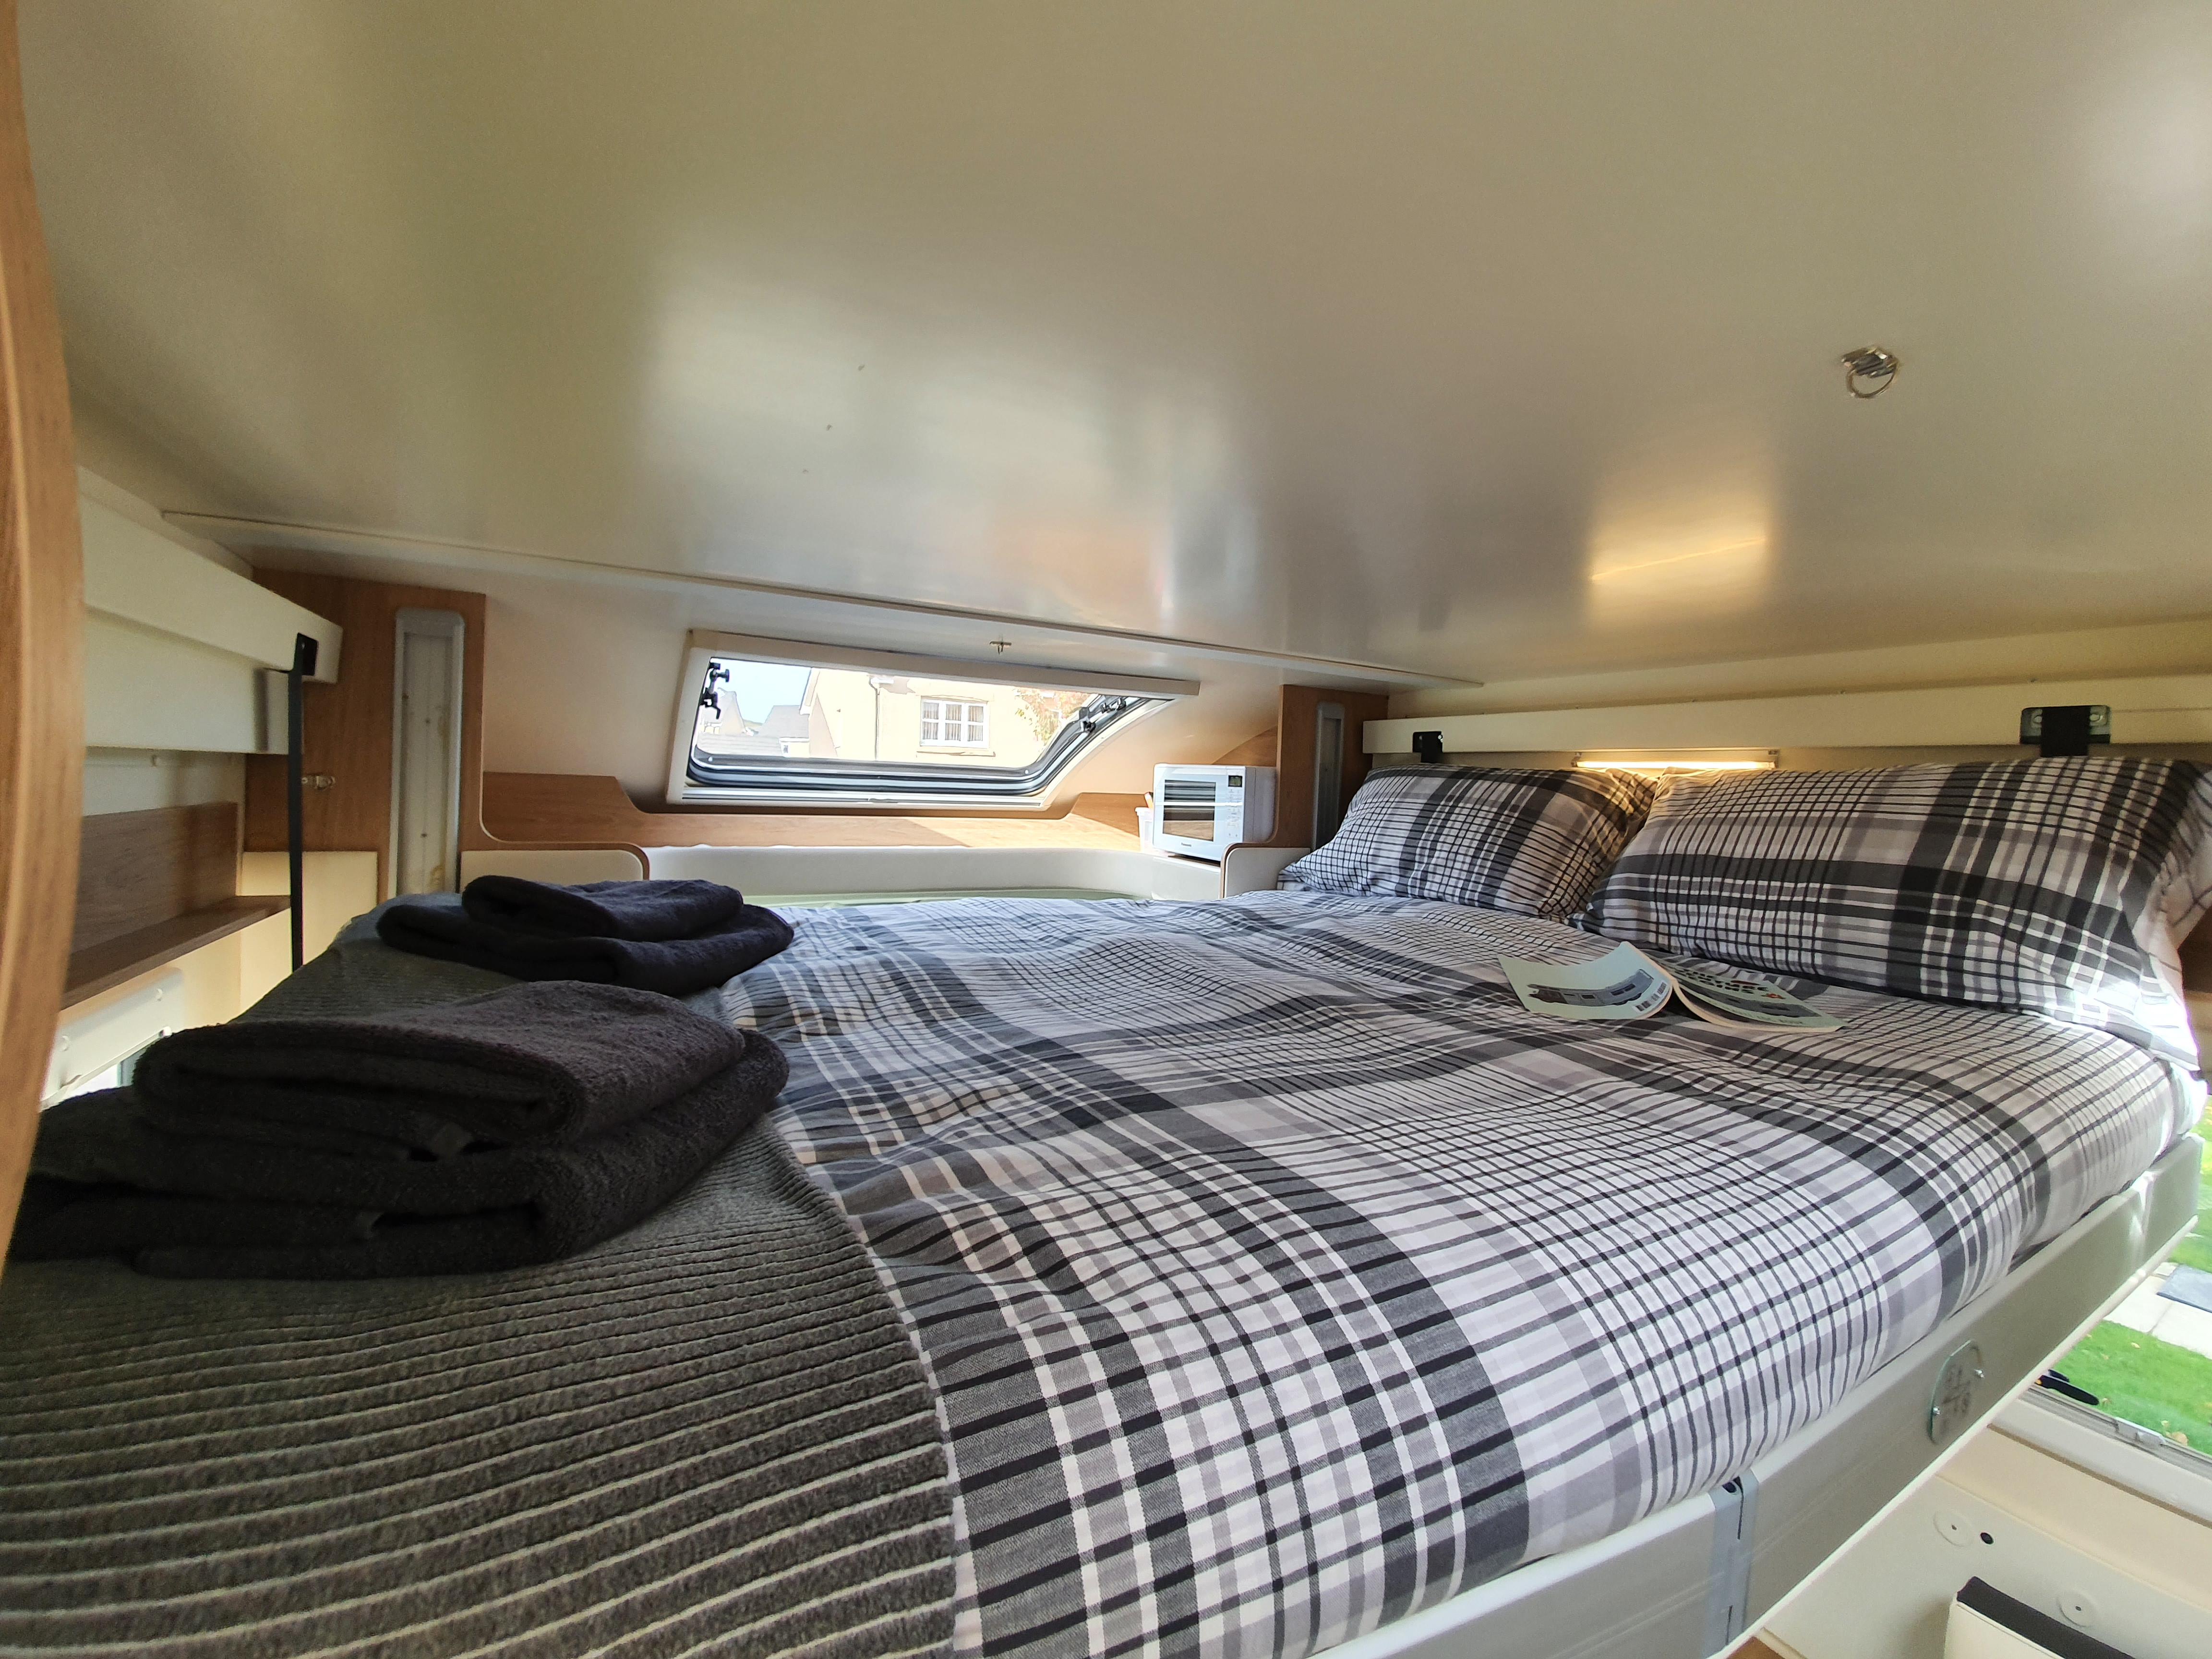 Image of electric drop down double bed over main lounge area